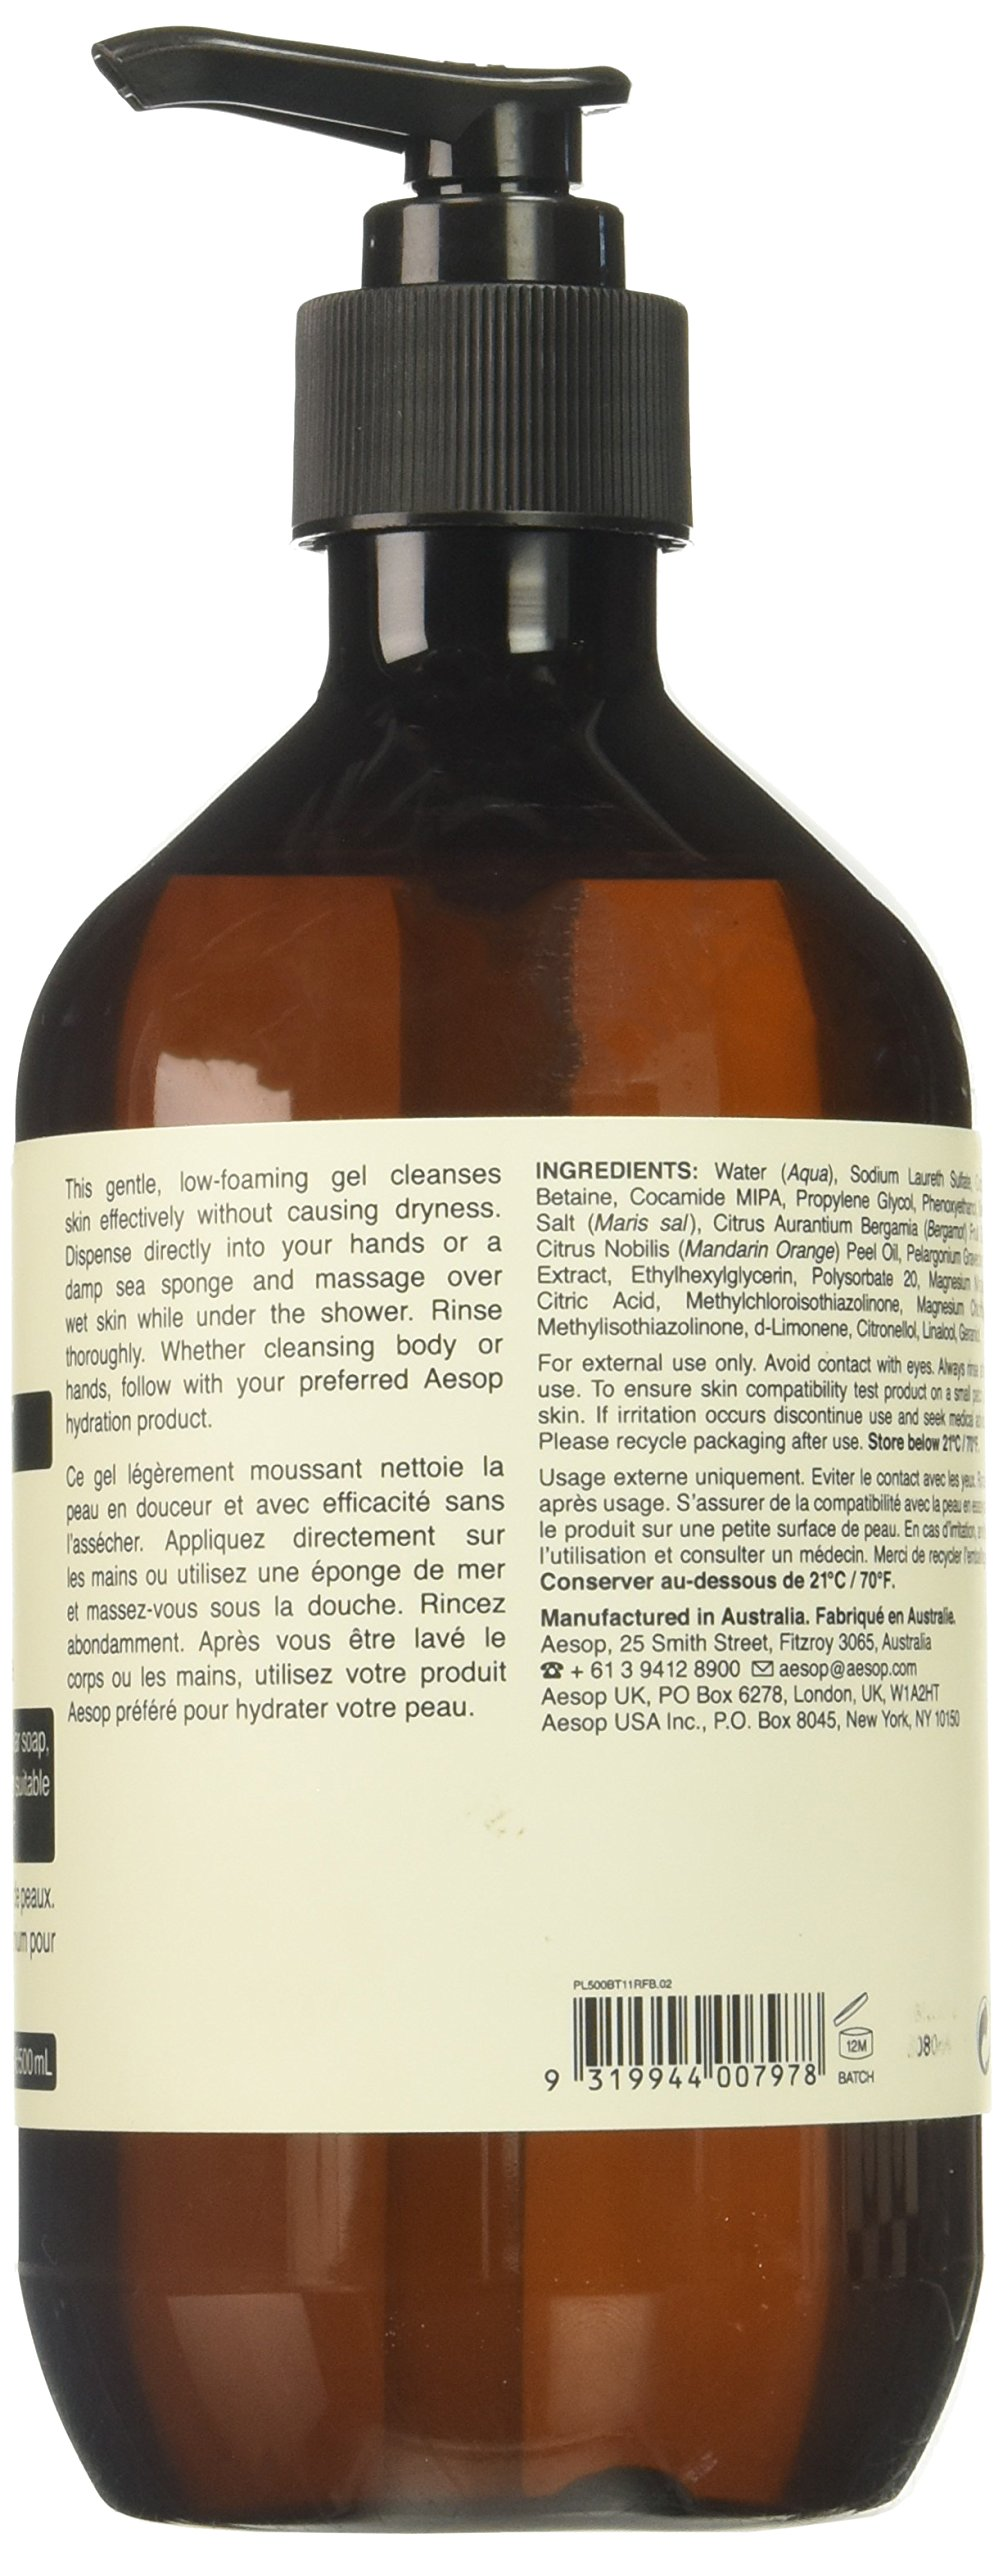 Aesop Geranium Leaf Body Cleanser, 16.9 Ounce by Aesop (Image #2)